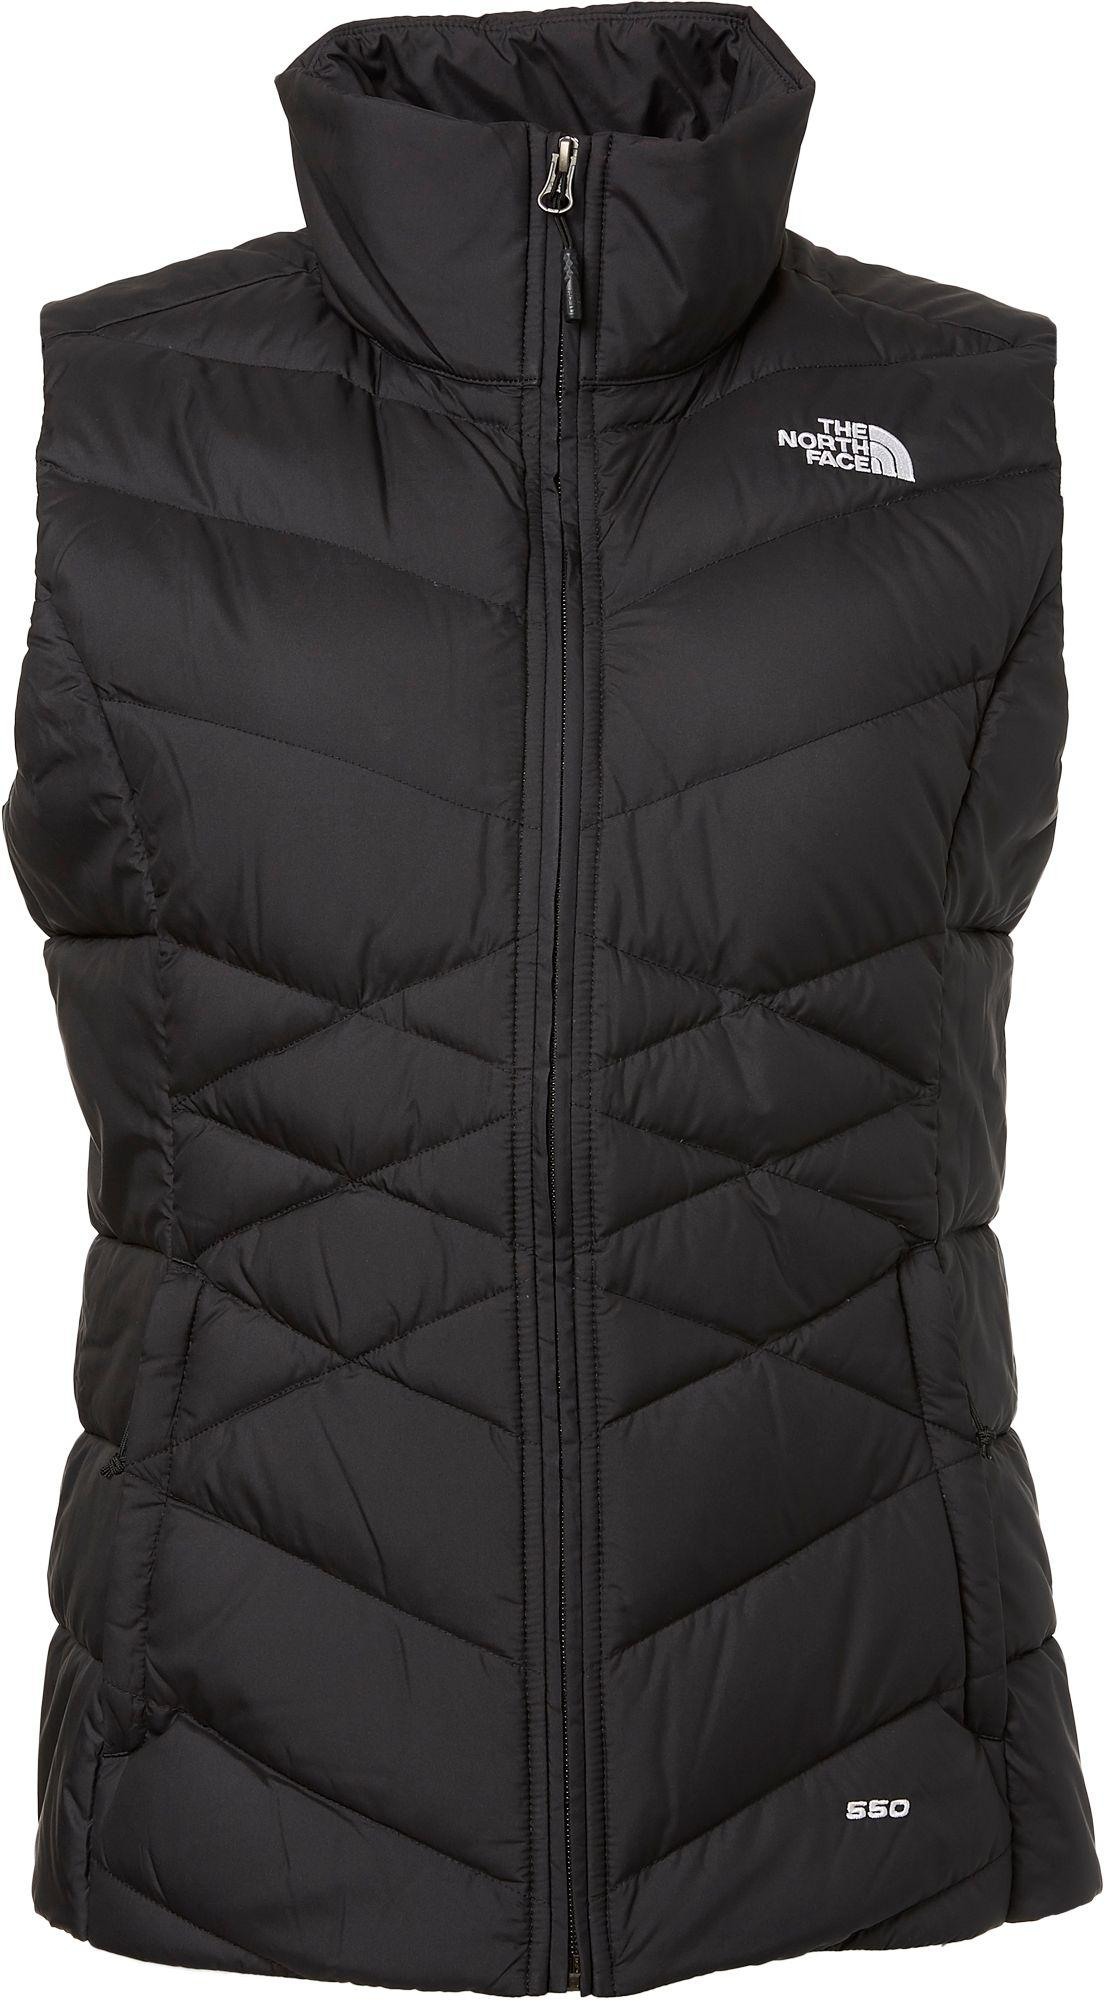 North face women's down filled jacket